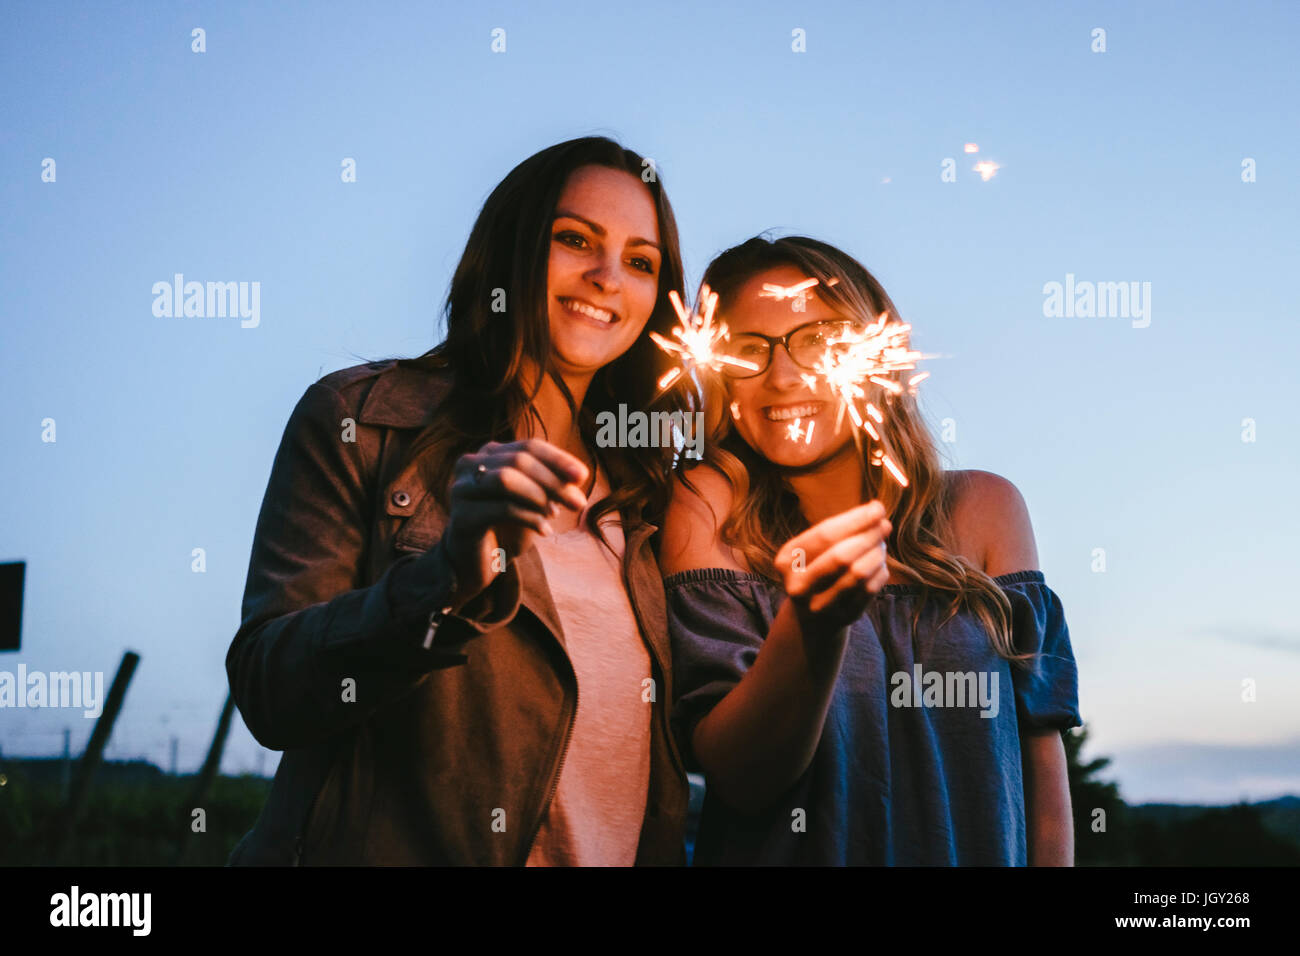 Friends playing with sparklers - Stock Image